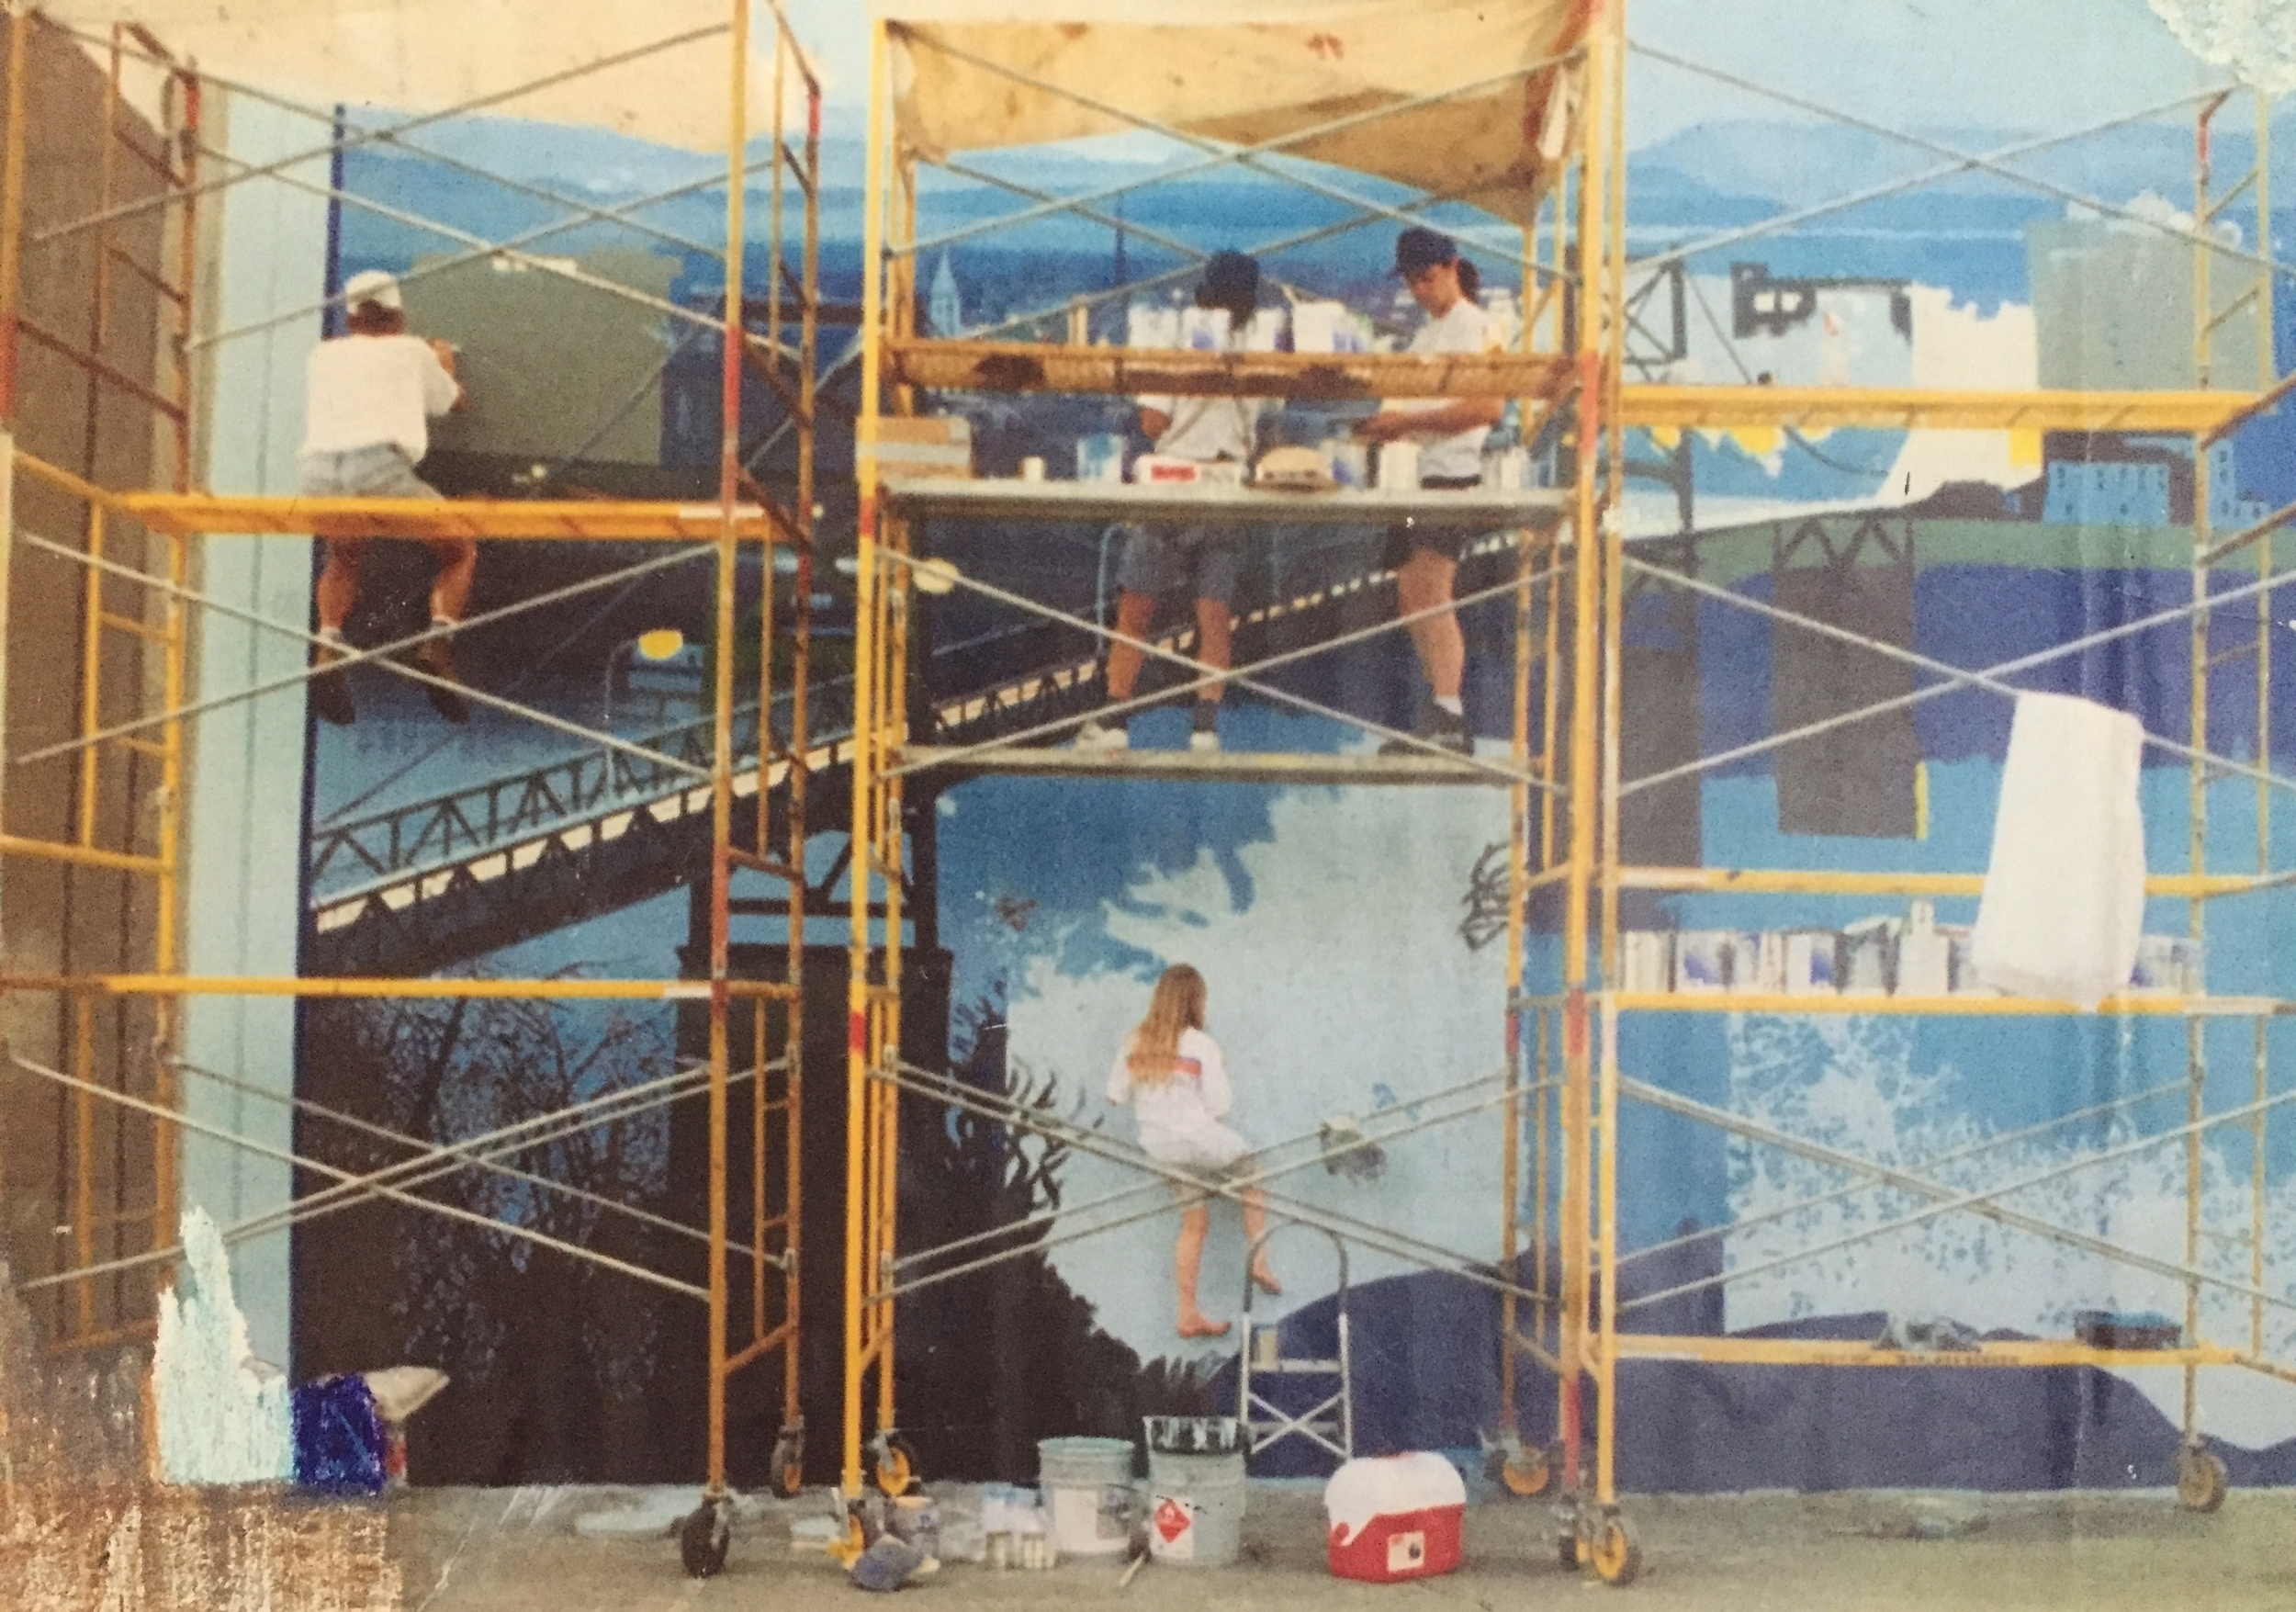 Hellmann at age 9, painting a mural with her father Robert Dafford in Portsmouth, OH.